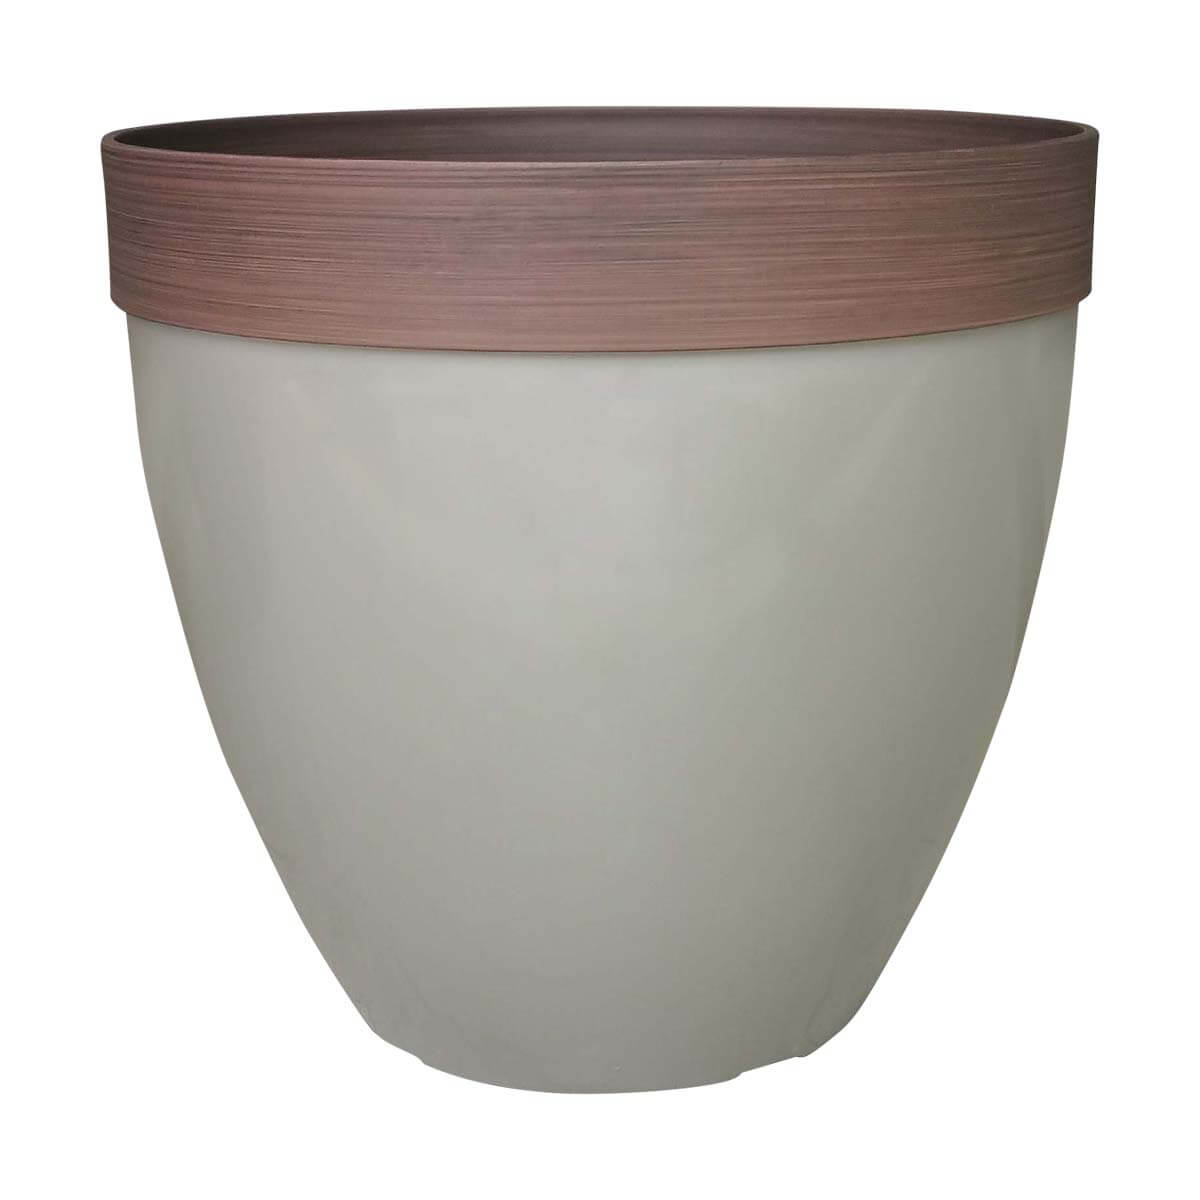 Planter - Taupe - 15 in